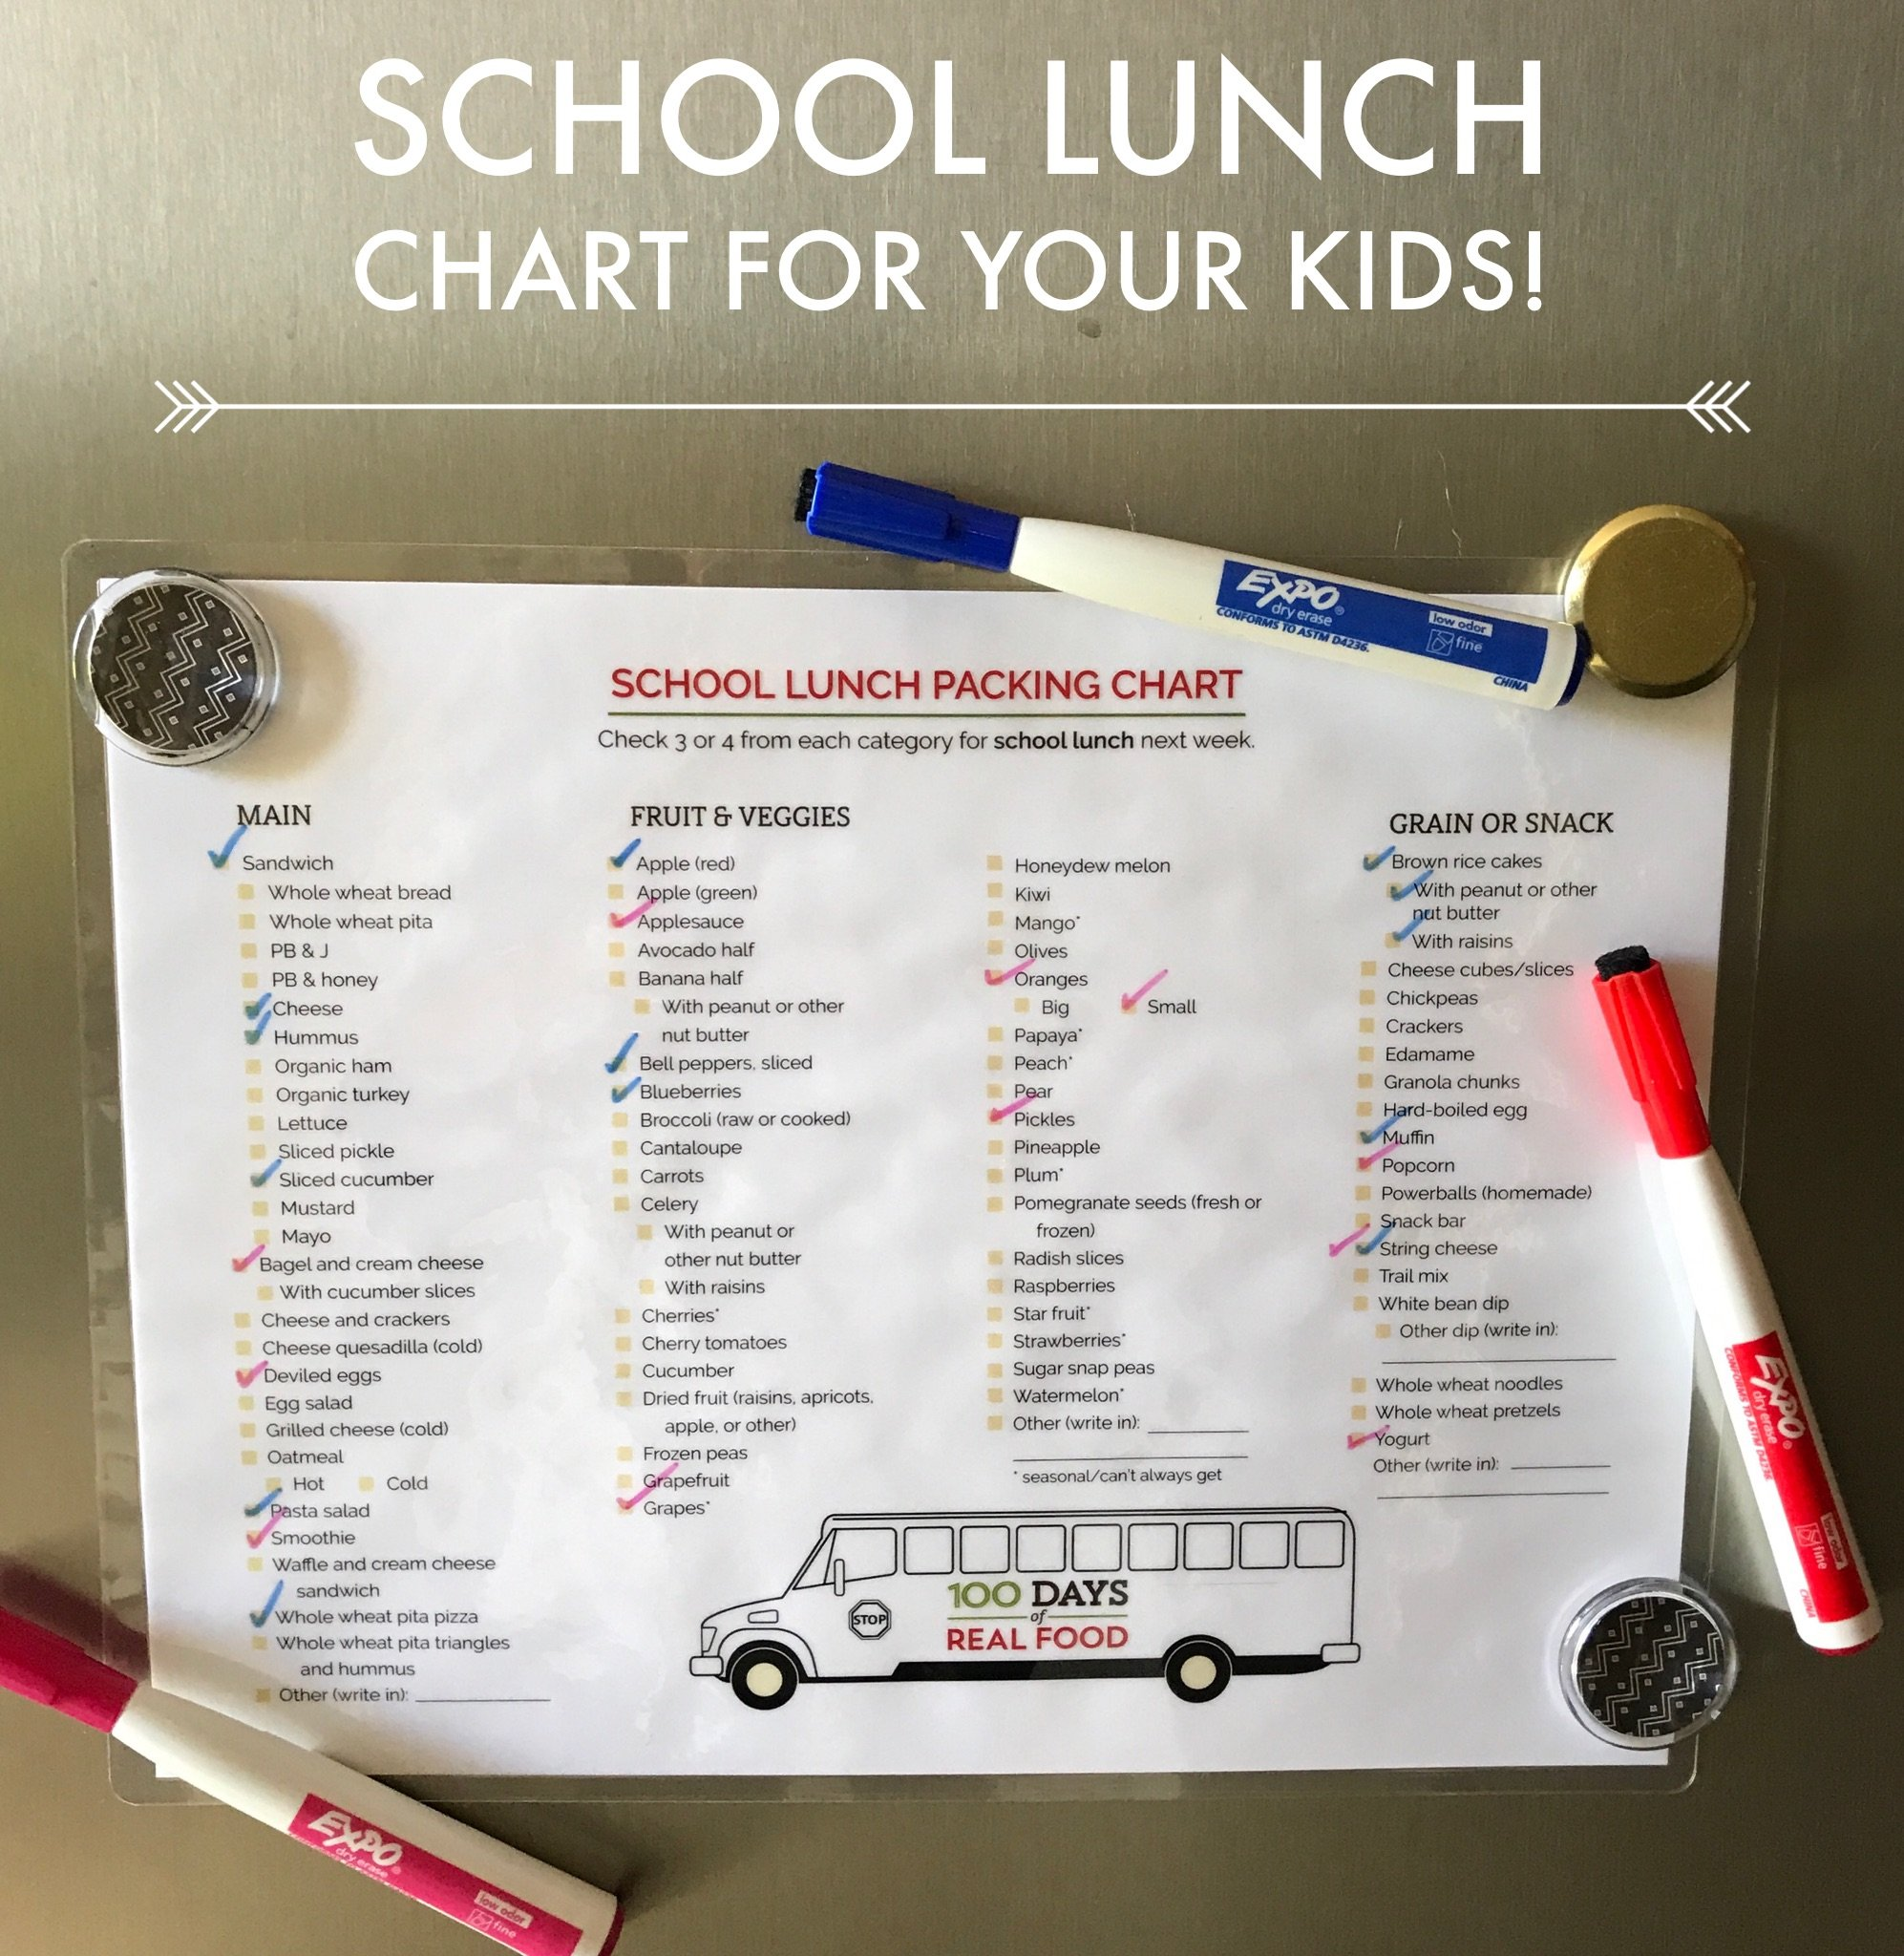 School Lunch Chart for Your Kids